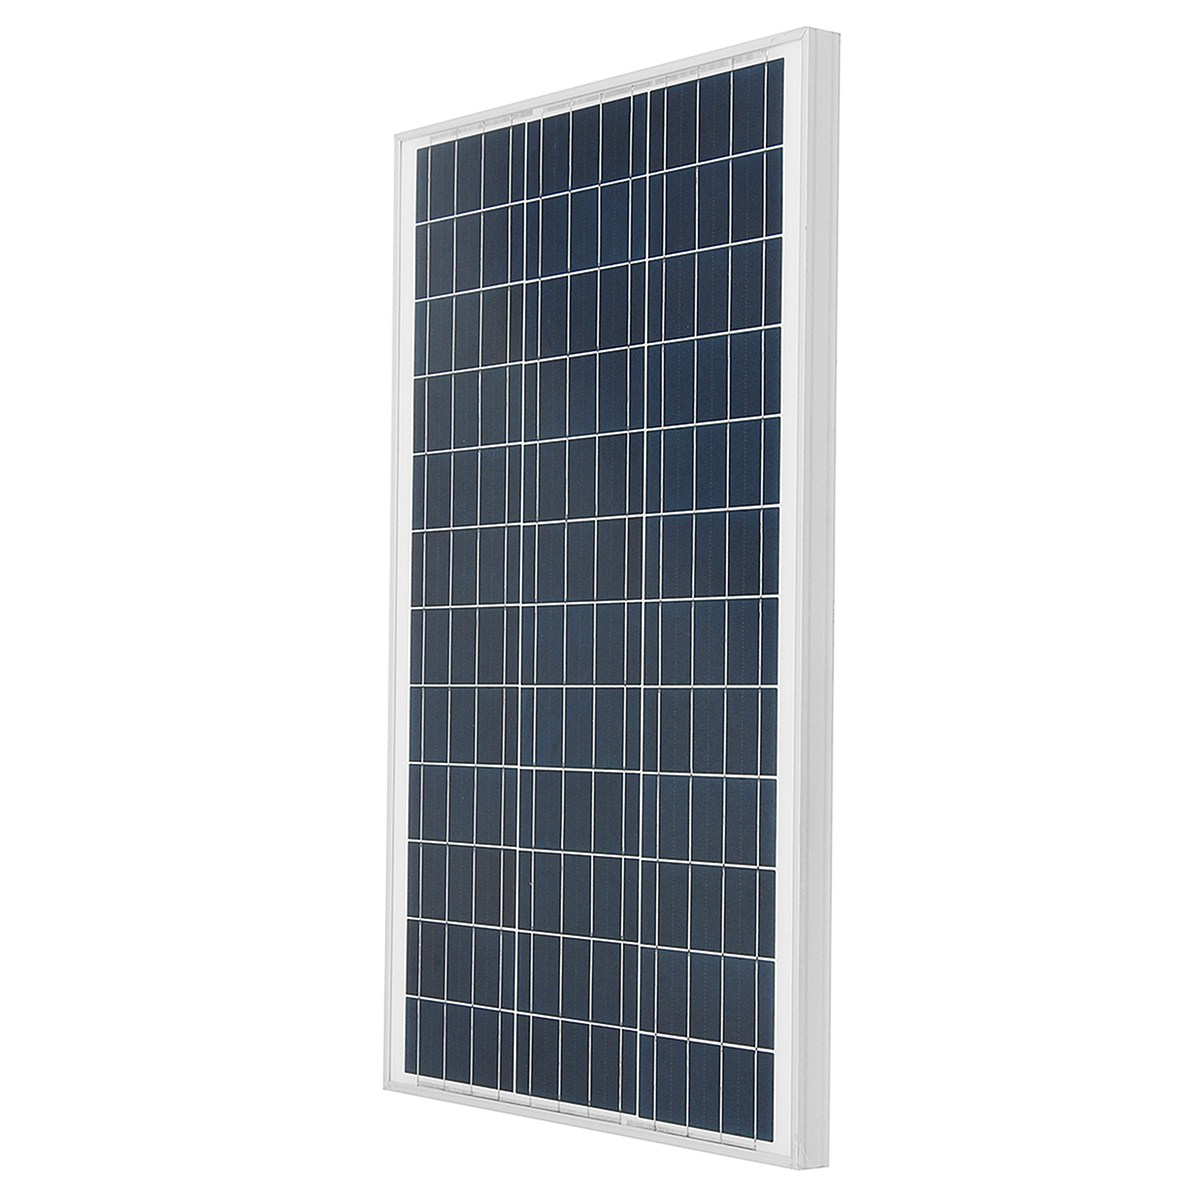 KINCO 60w 18v Polycrystalline Silicon Solar Panel With Glass Bearing Plate Suitable For Car Battery Used With Wind Generator 100w folding solar panel solar battery charger for car boat caravan golf cart